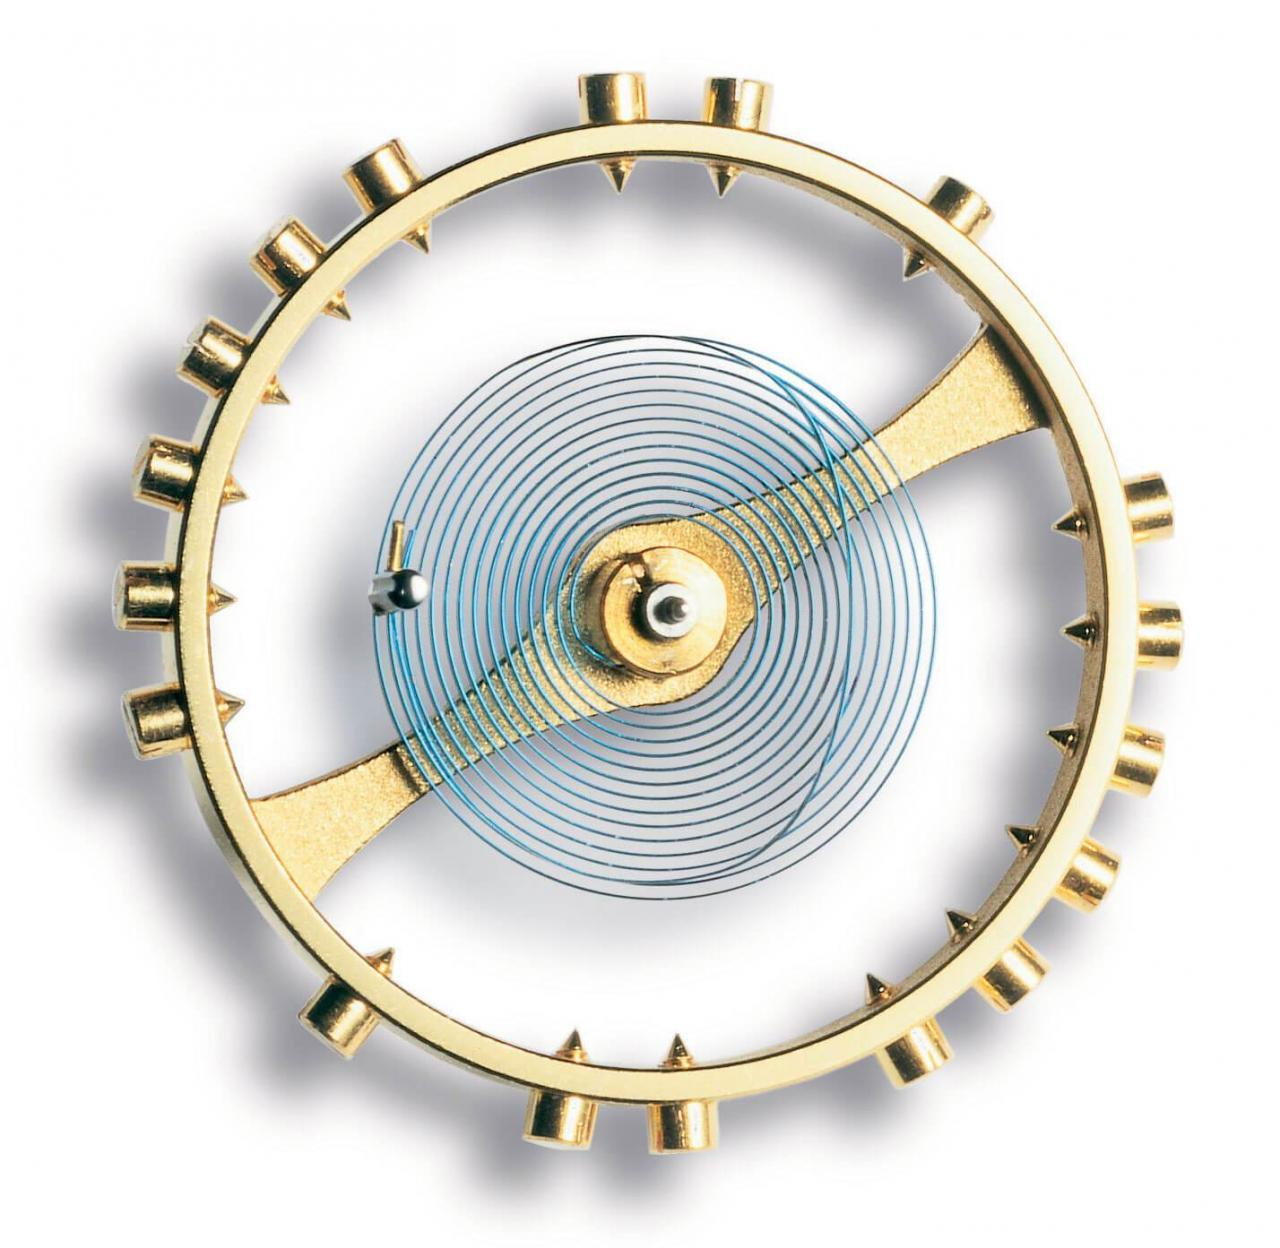 https://i1.wp.com/www.breguet.com/sites/default/files/invention/spiral-contemporain_opt_0.jpg